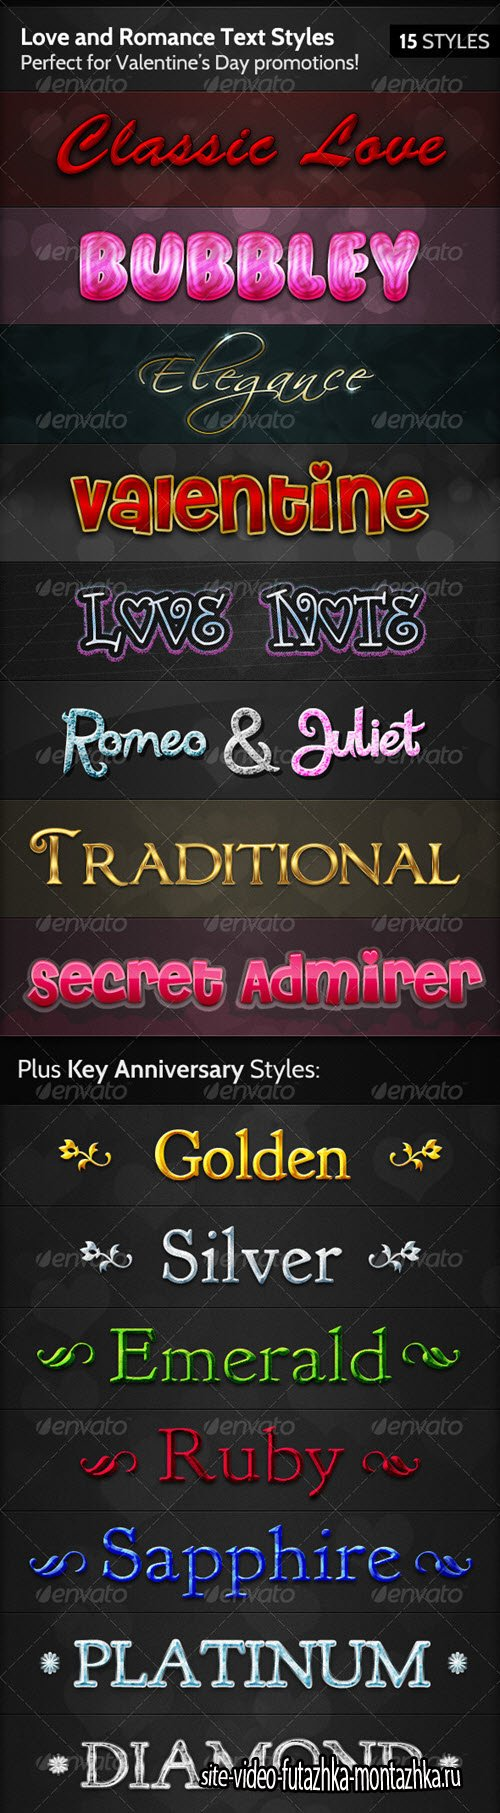 GraphicRiver - Love and Romance Text Styles